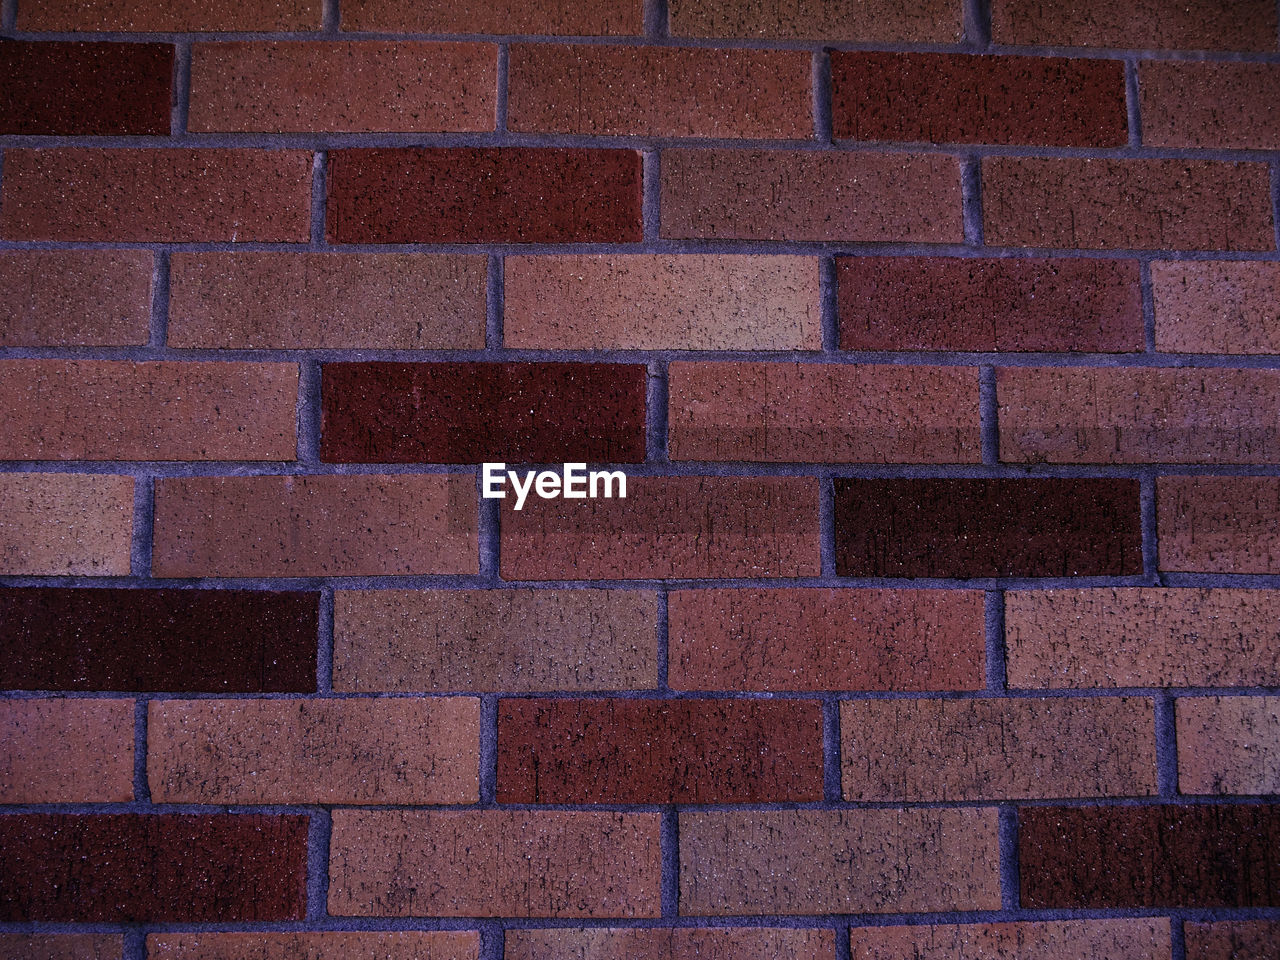 brick, backgrounds, full frame, brick wall, wall, pattern, textured, no people, wall - building feature, built structure, architecture, red, shape, day, brown, repetition, outdoors, design, close-up, in a row